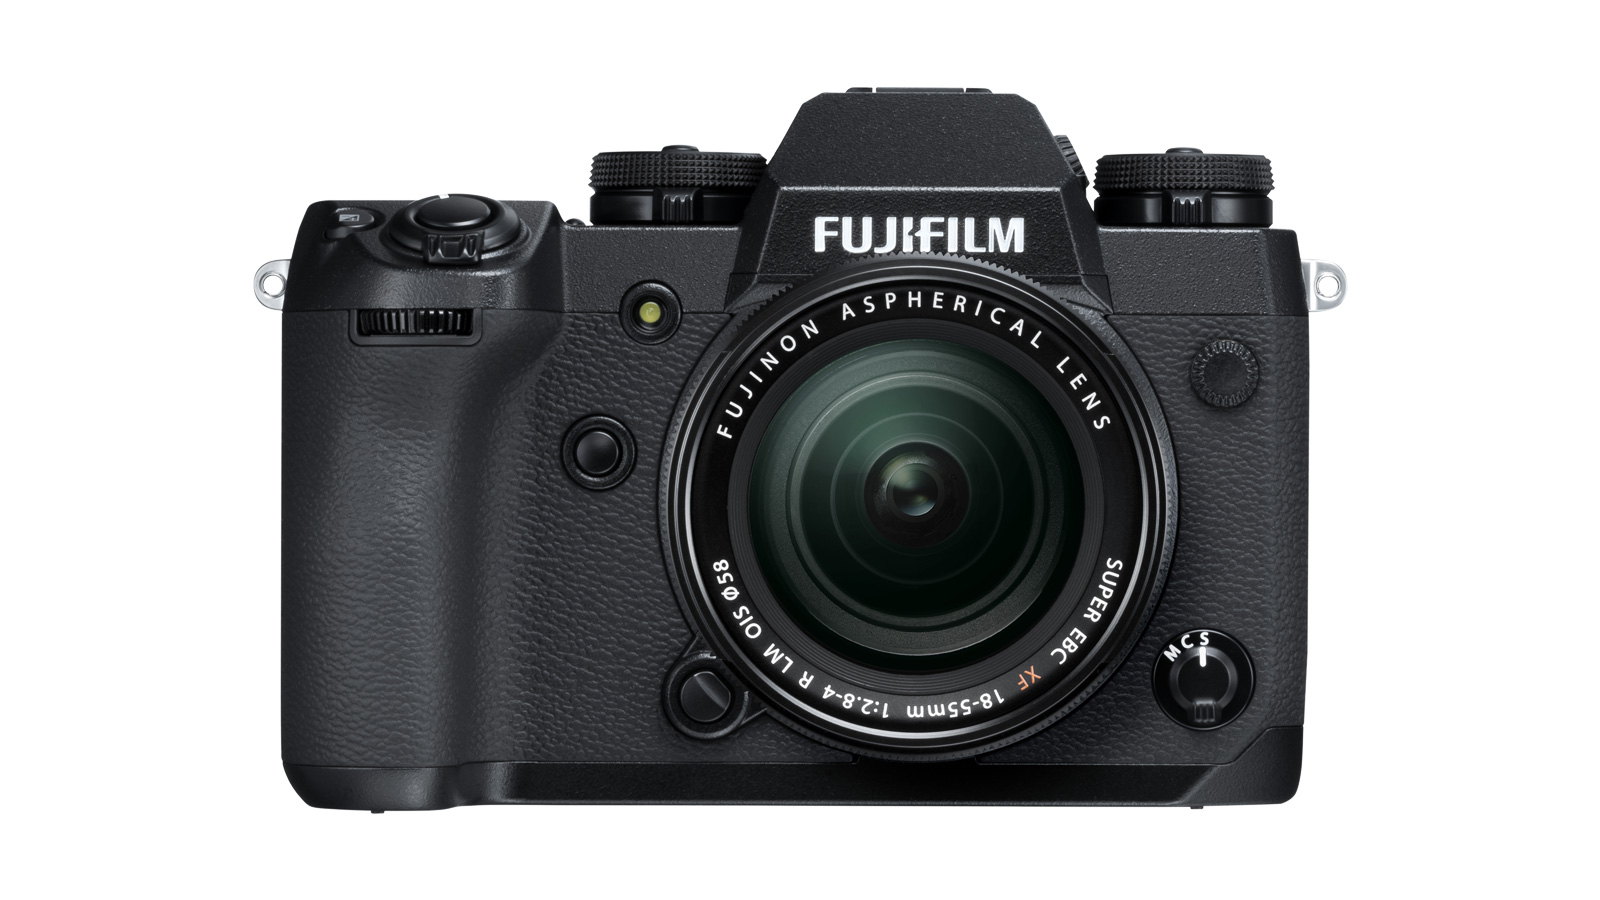 Fujifilm's New X-H1 Their First Camera With IBIS